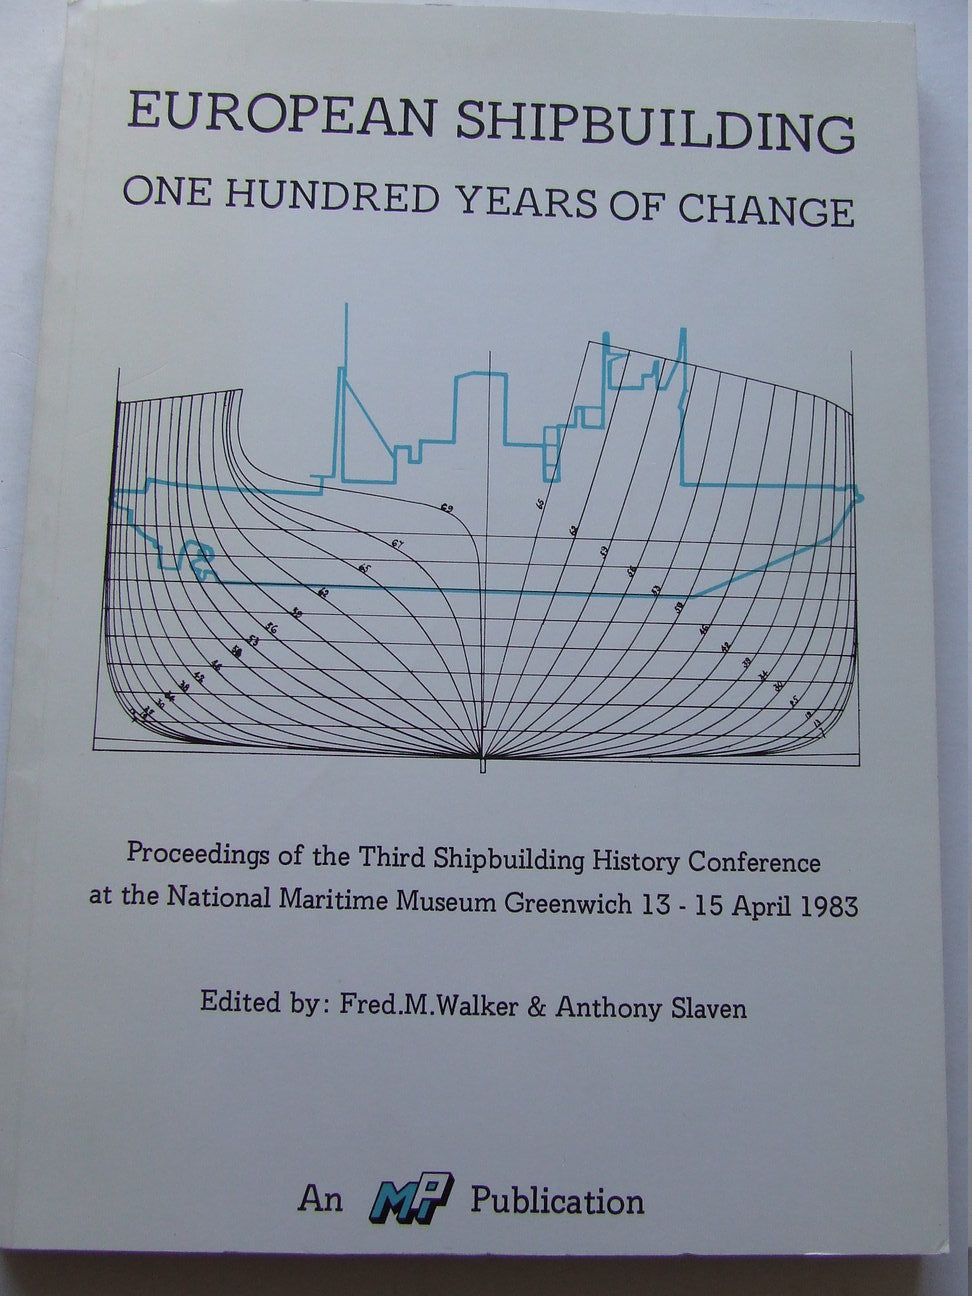 European Shipbuilding, one hundred years of change